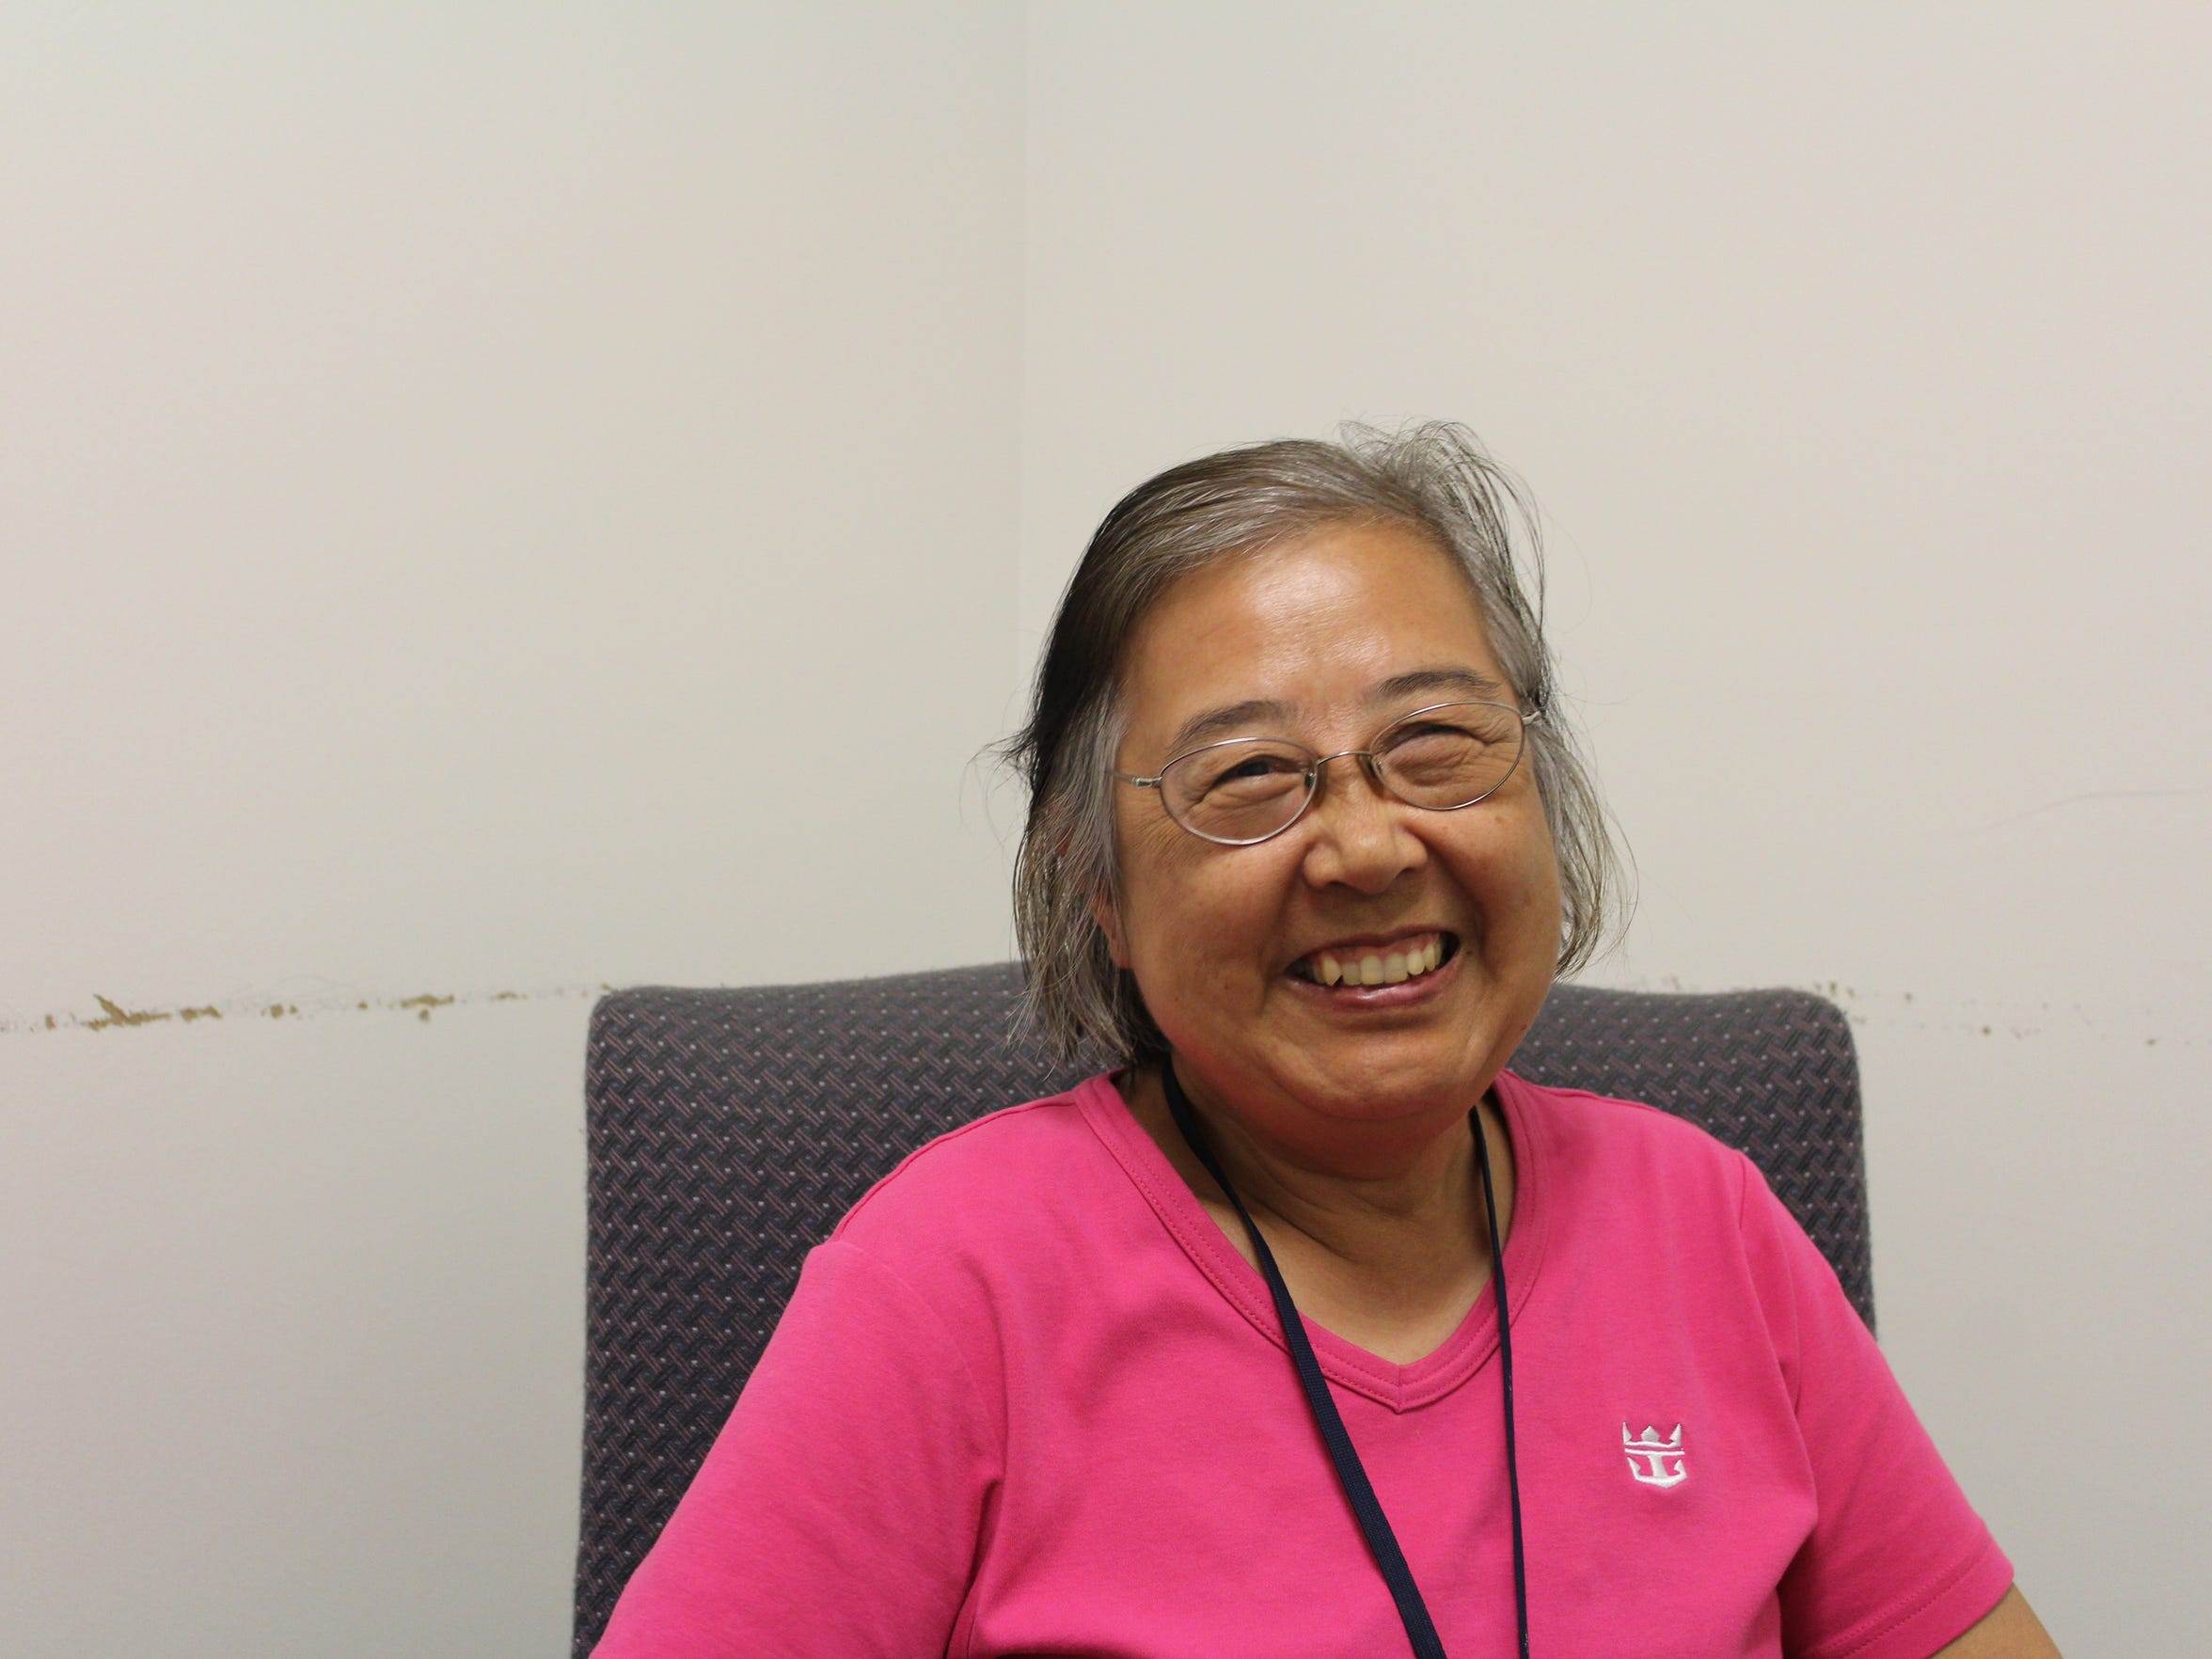 Yen Chen is the founding president of the Chinese Association of Tallahassee.